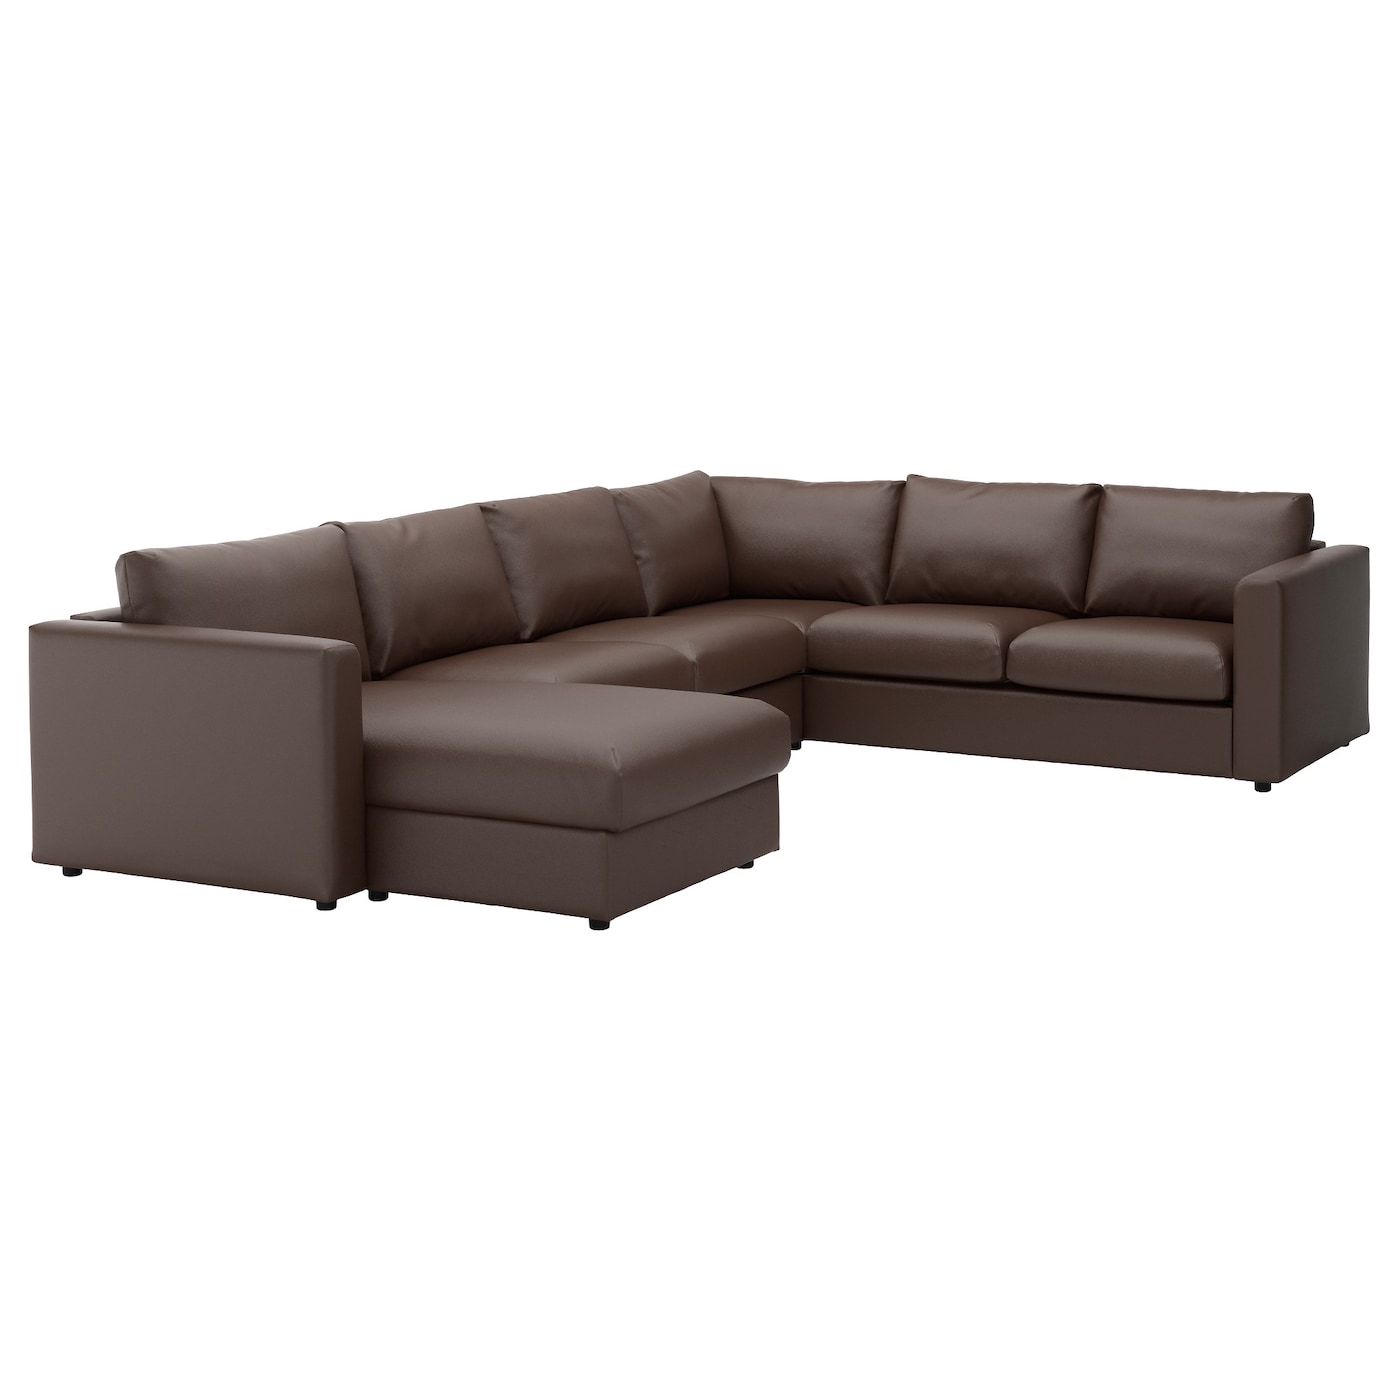 Vimle corner sofa 5 seat with chaise longue farsta dark for Black corner sofa